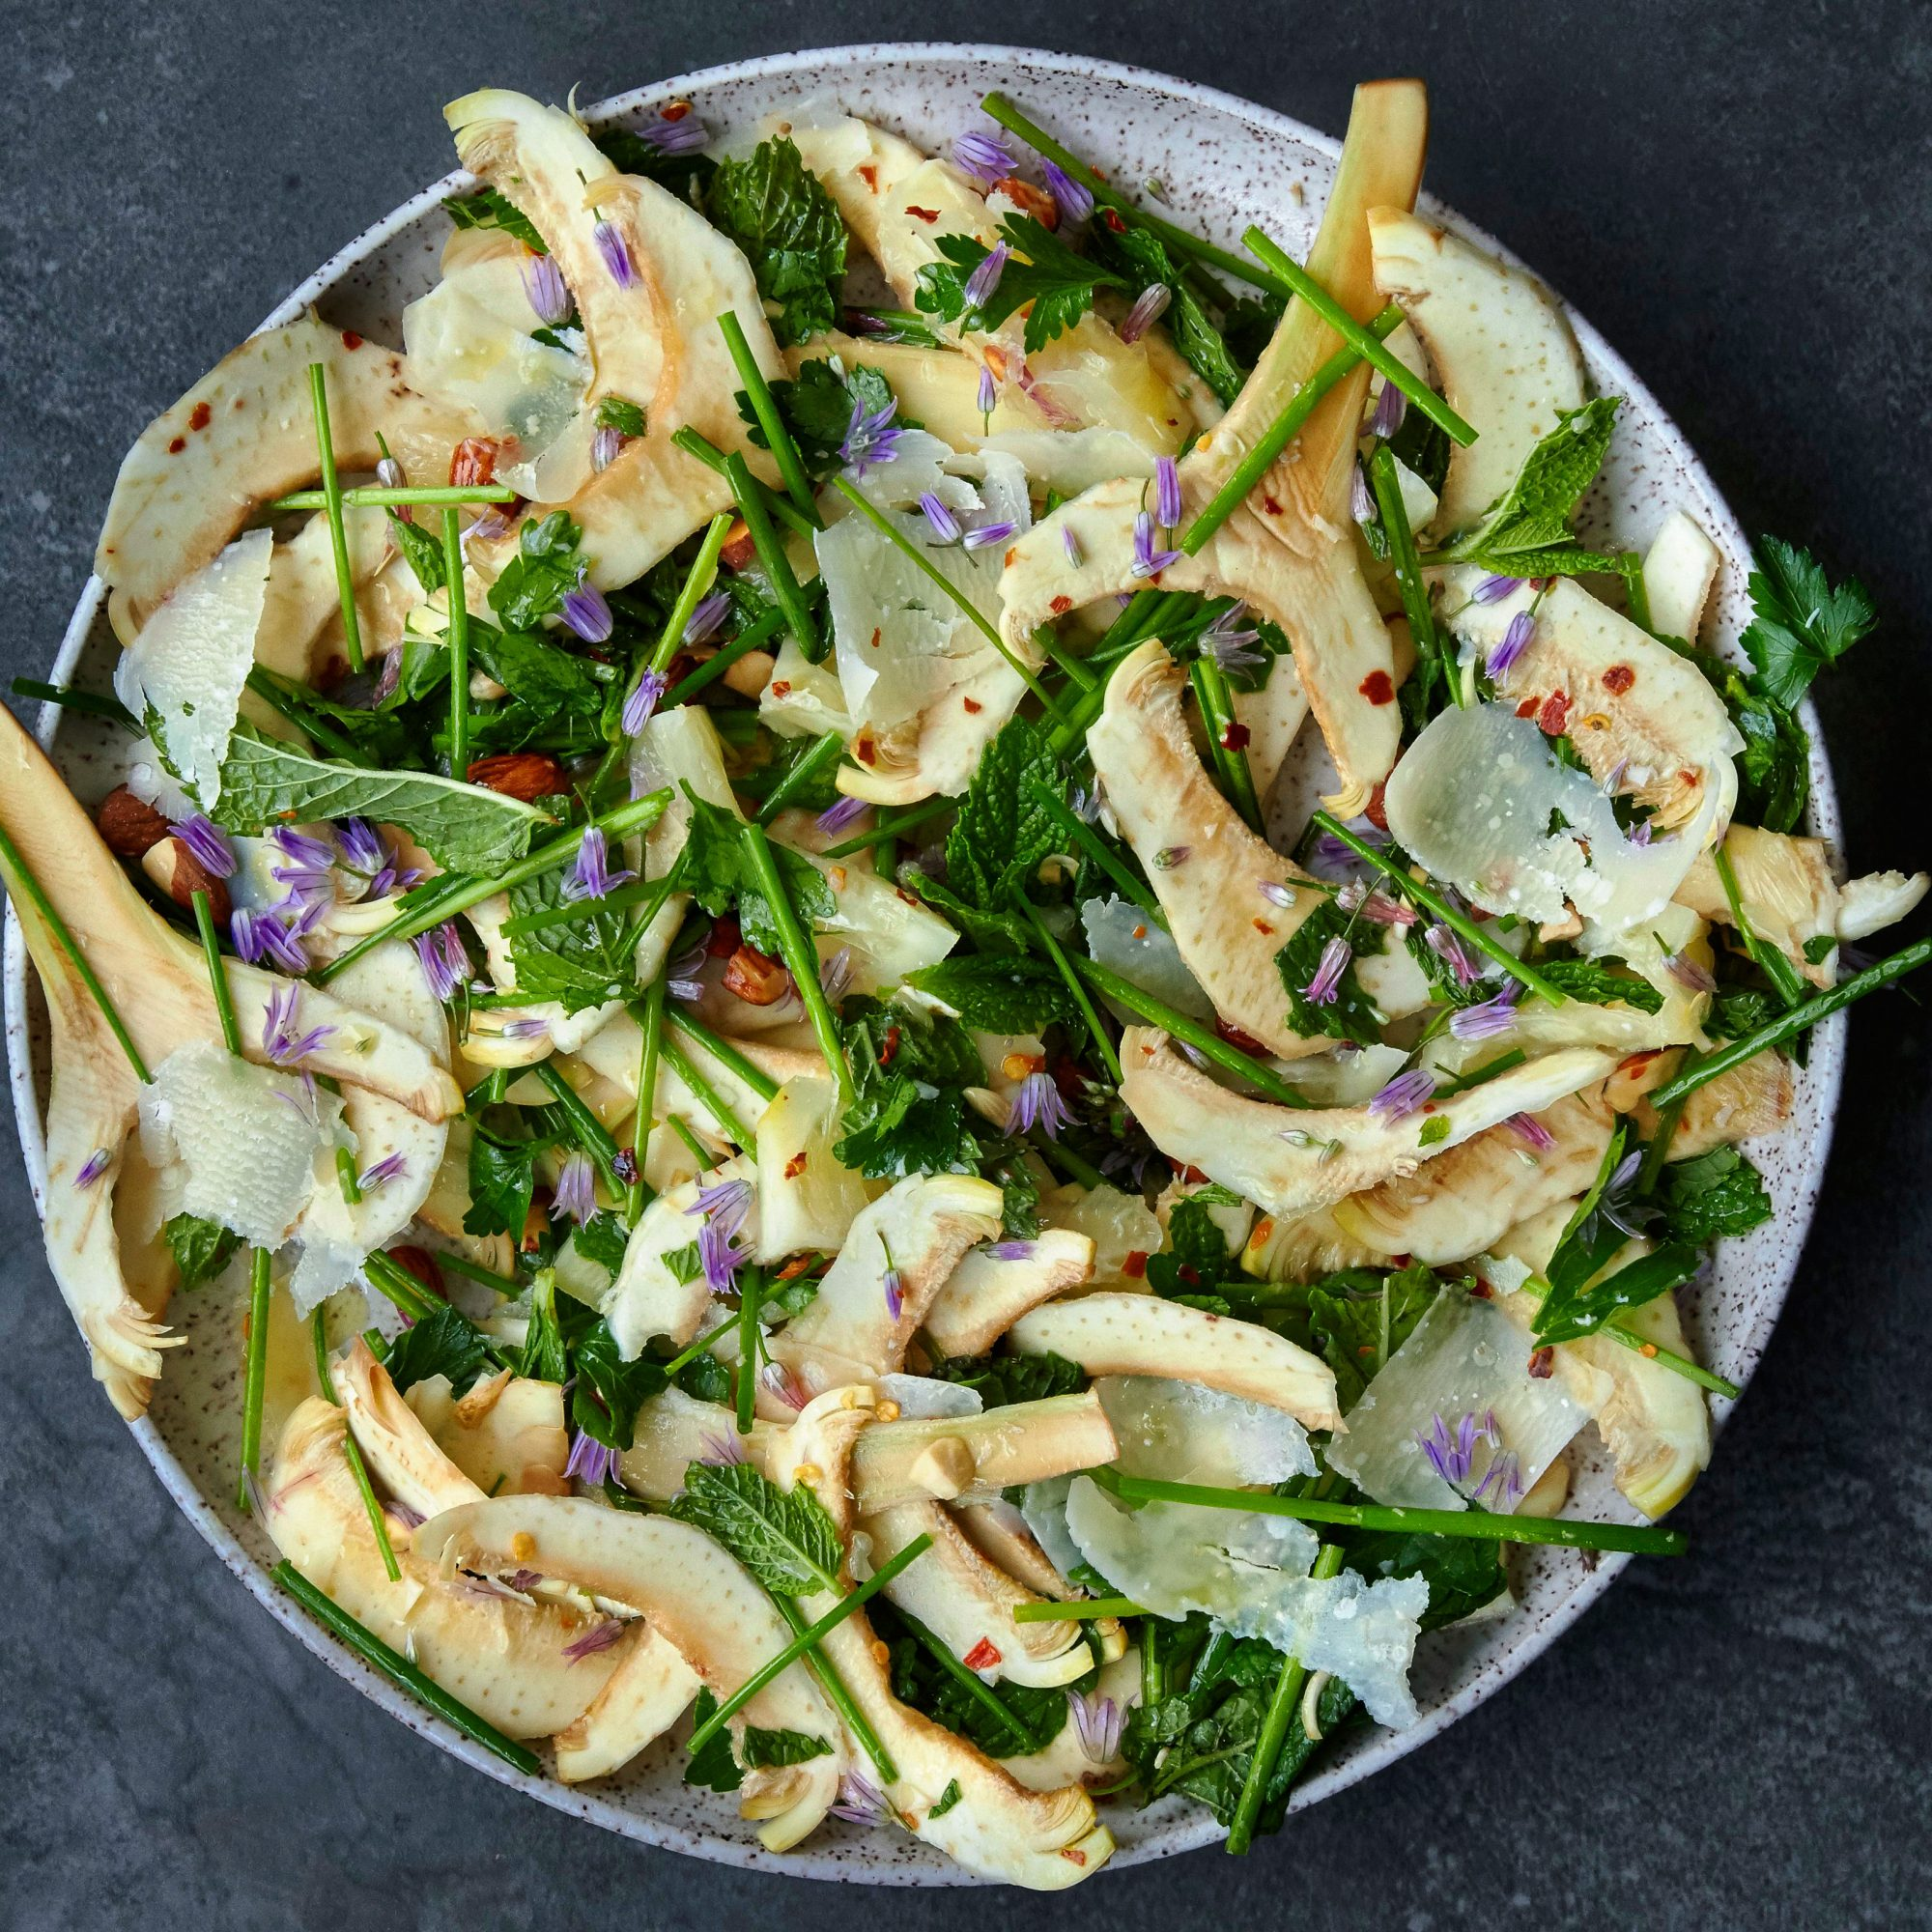 Raw Artichoke Salad with Herbs, Almonds, and Parmigiano